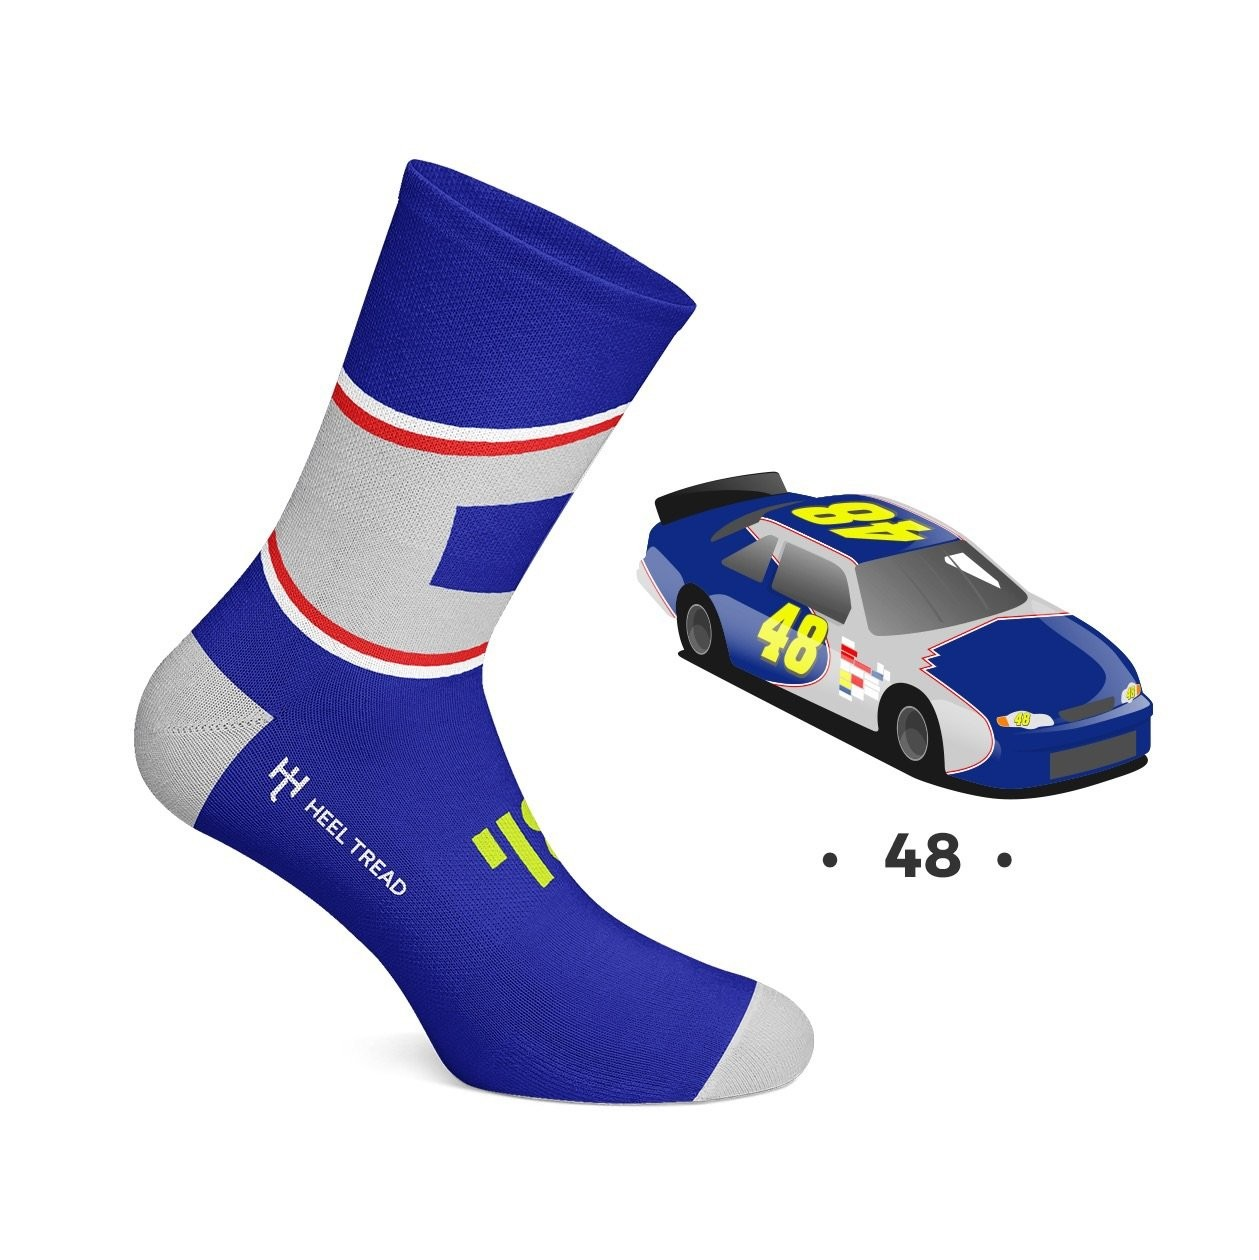 CHAUSSETTES LOWE'S 48